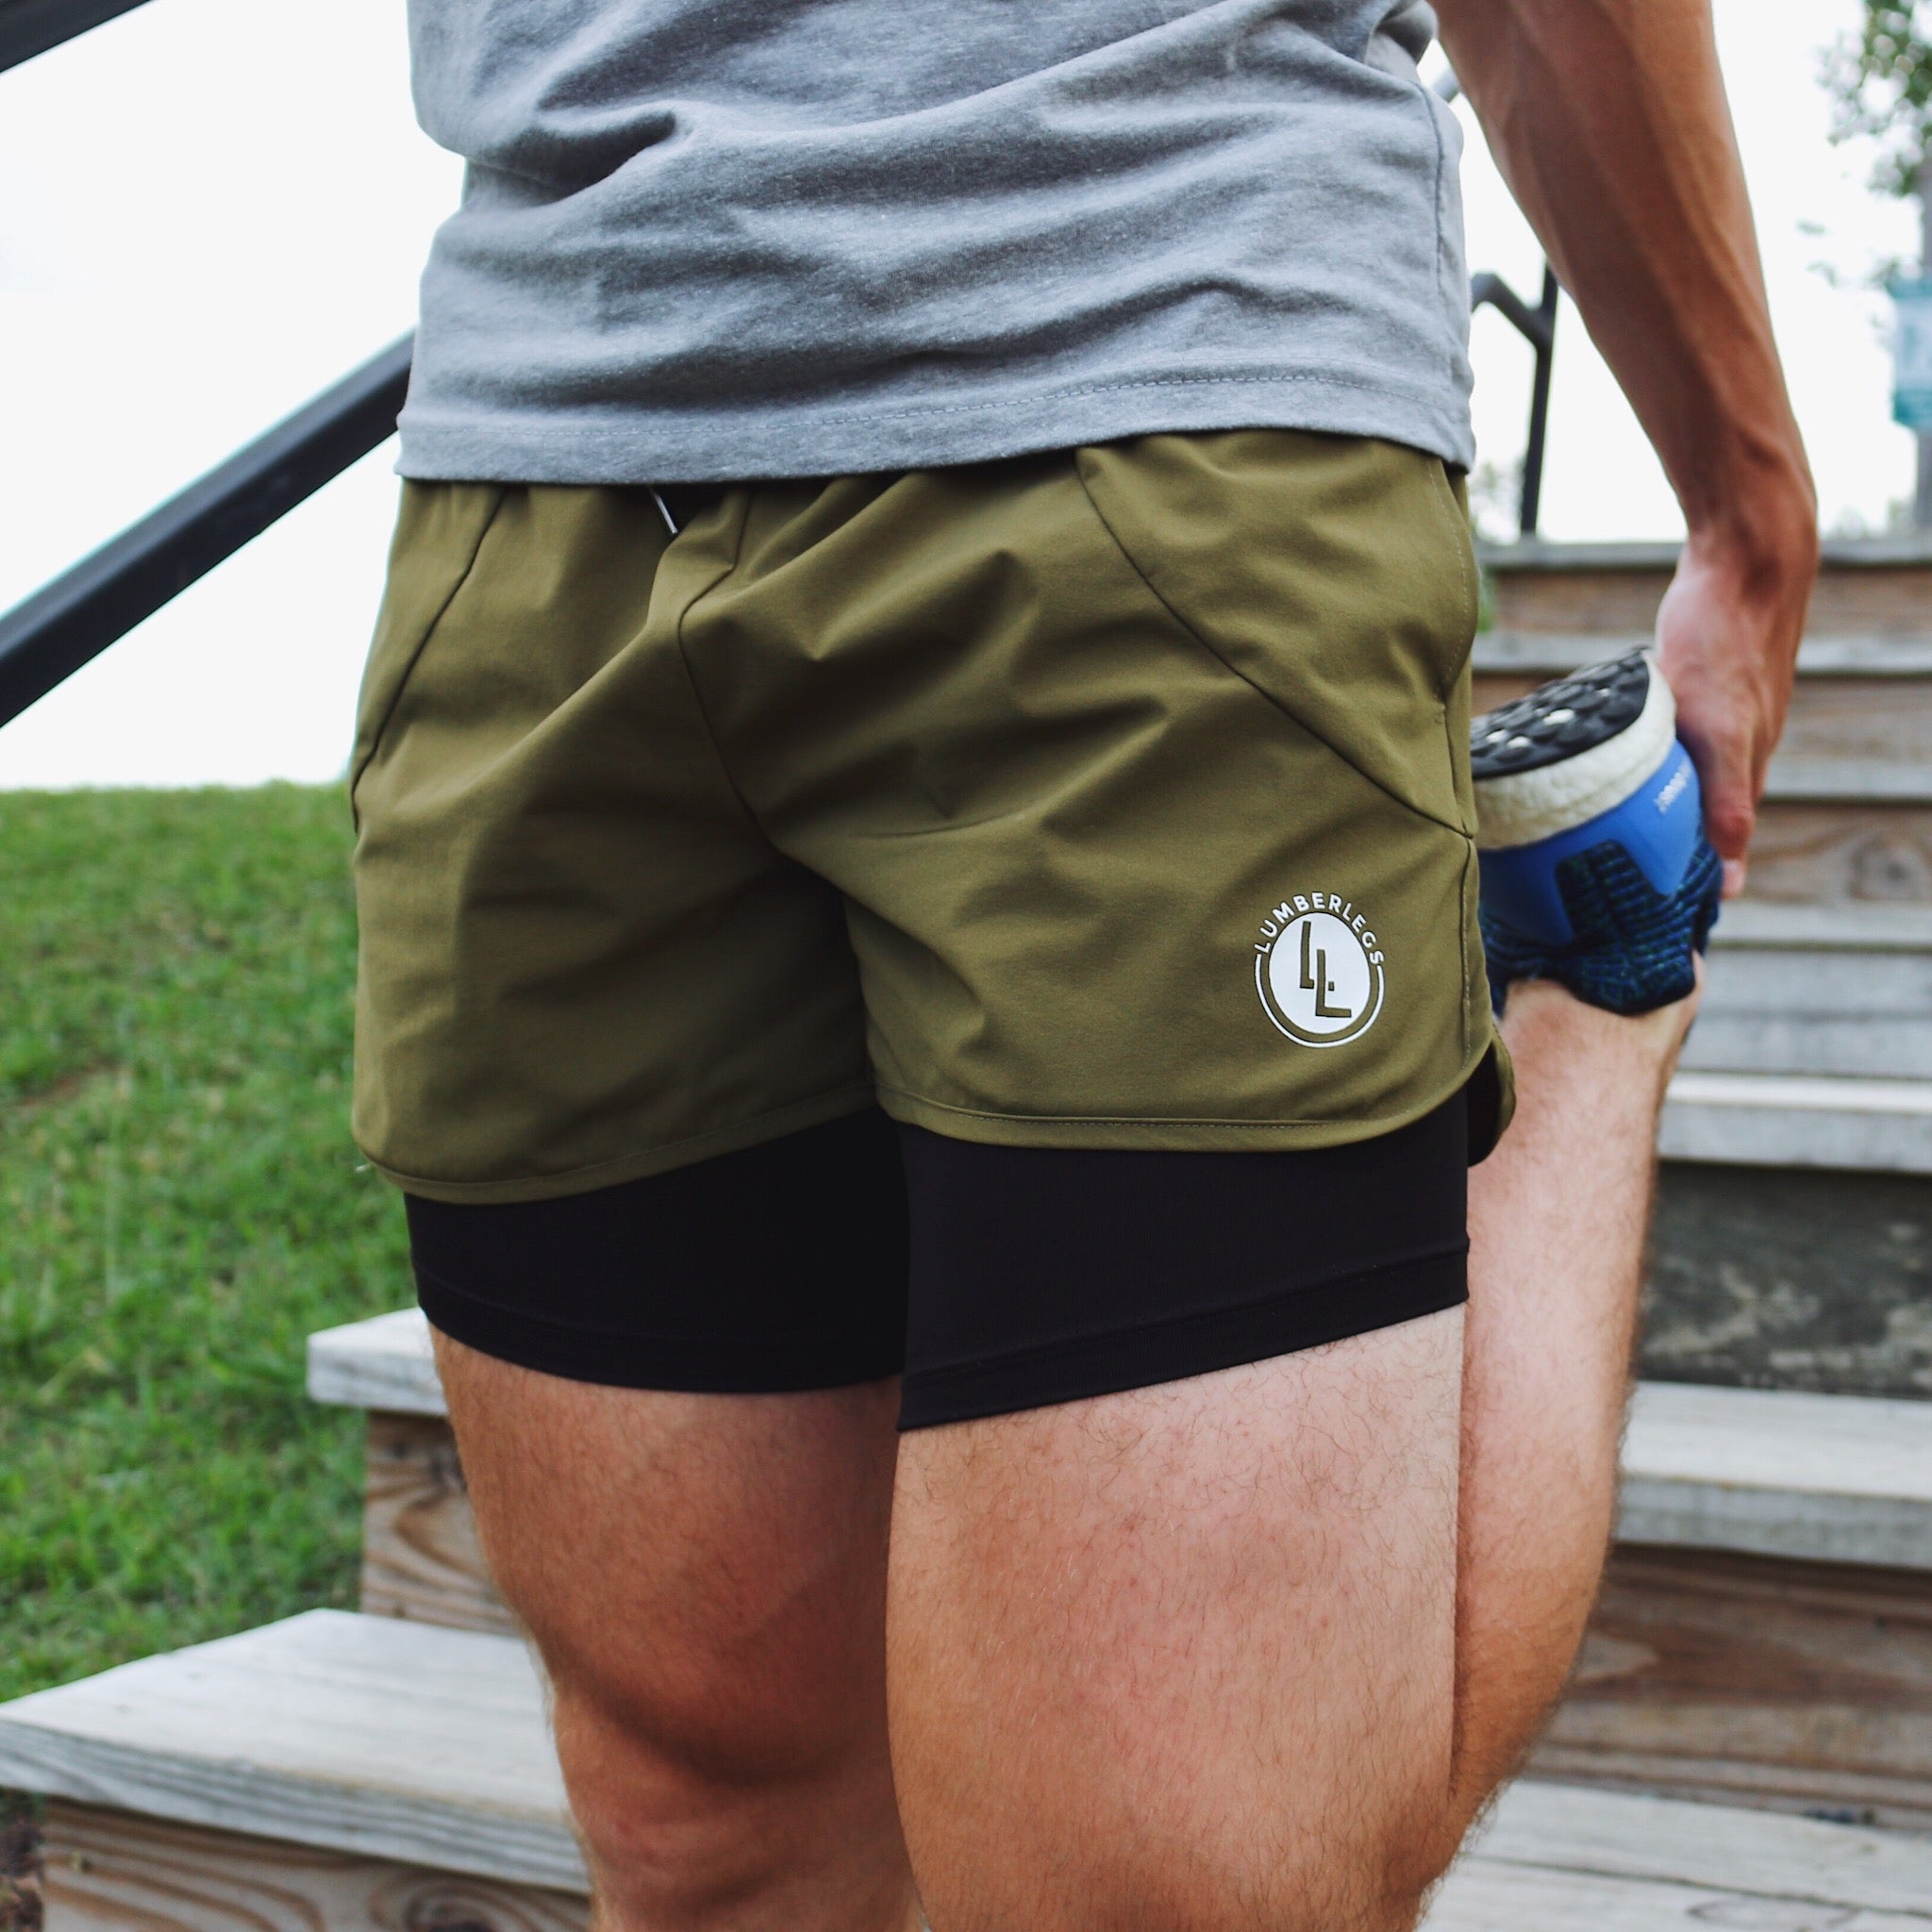 LEG DAY SHORTS ARMY GREEN